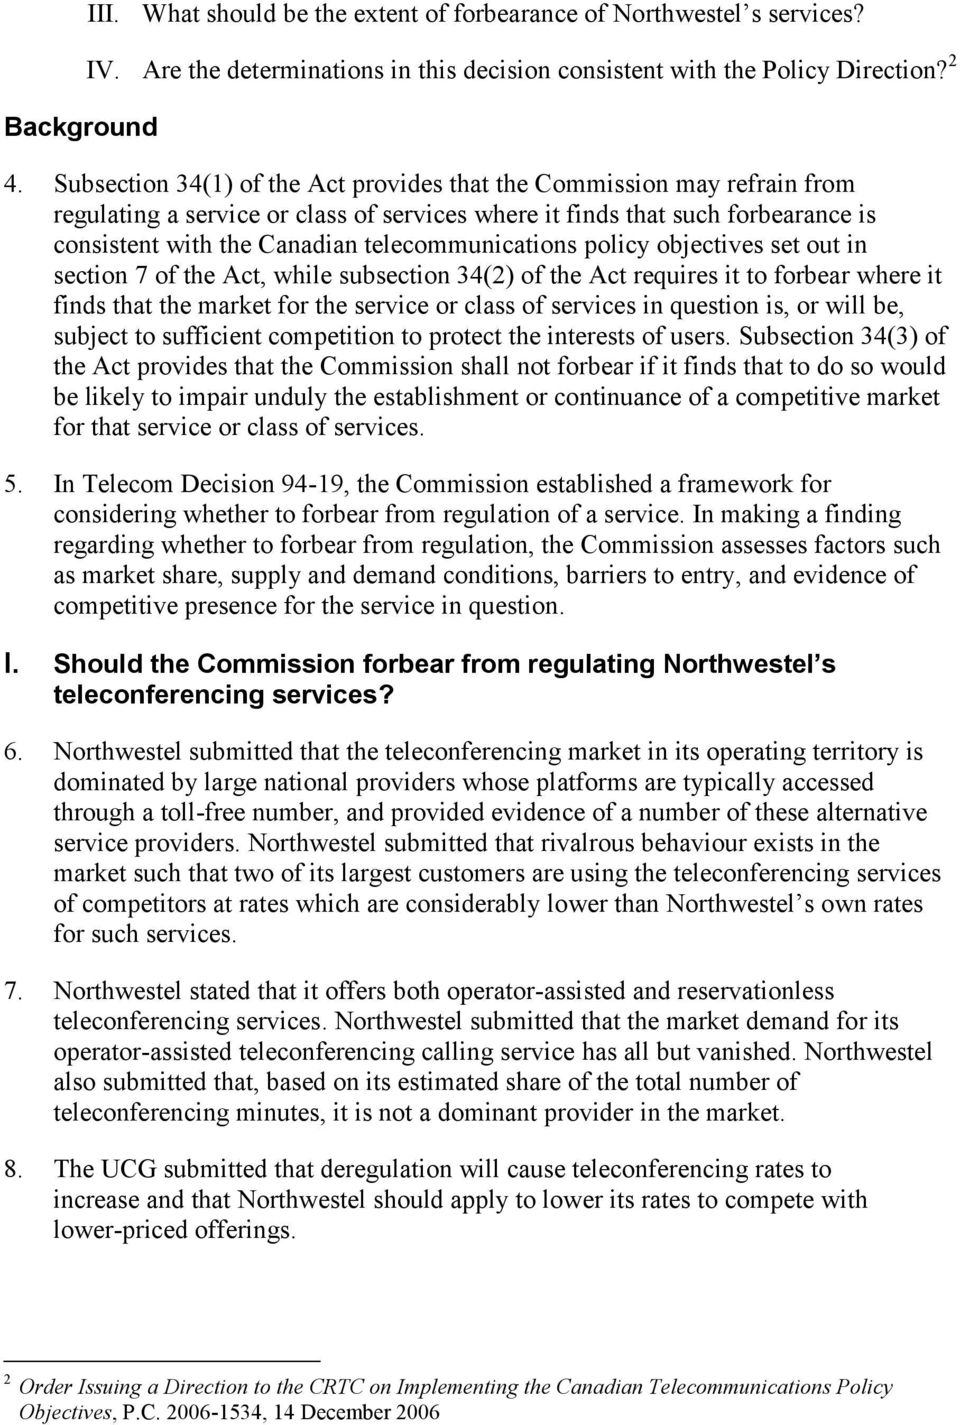 telecommunications policy objectives set out in section 7 of the Act, while subsection 34(2) of the Act requires it to forbear where it finds that the market for the service or class of services in